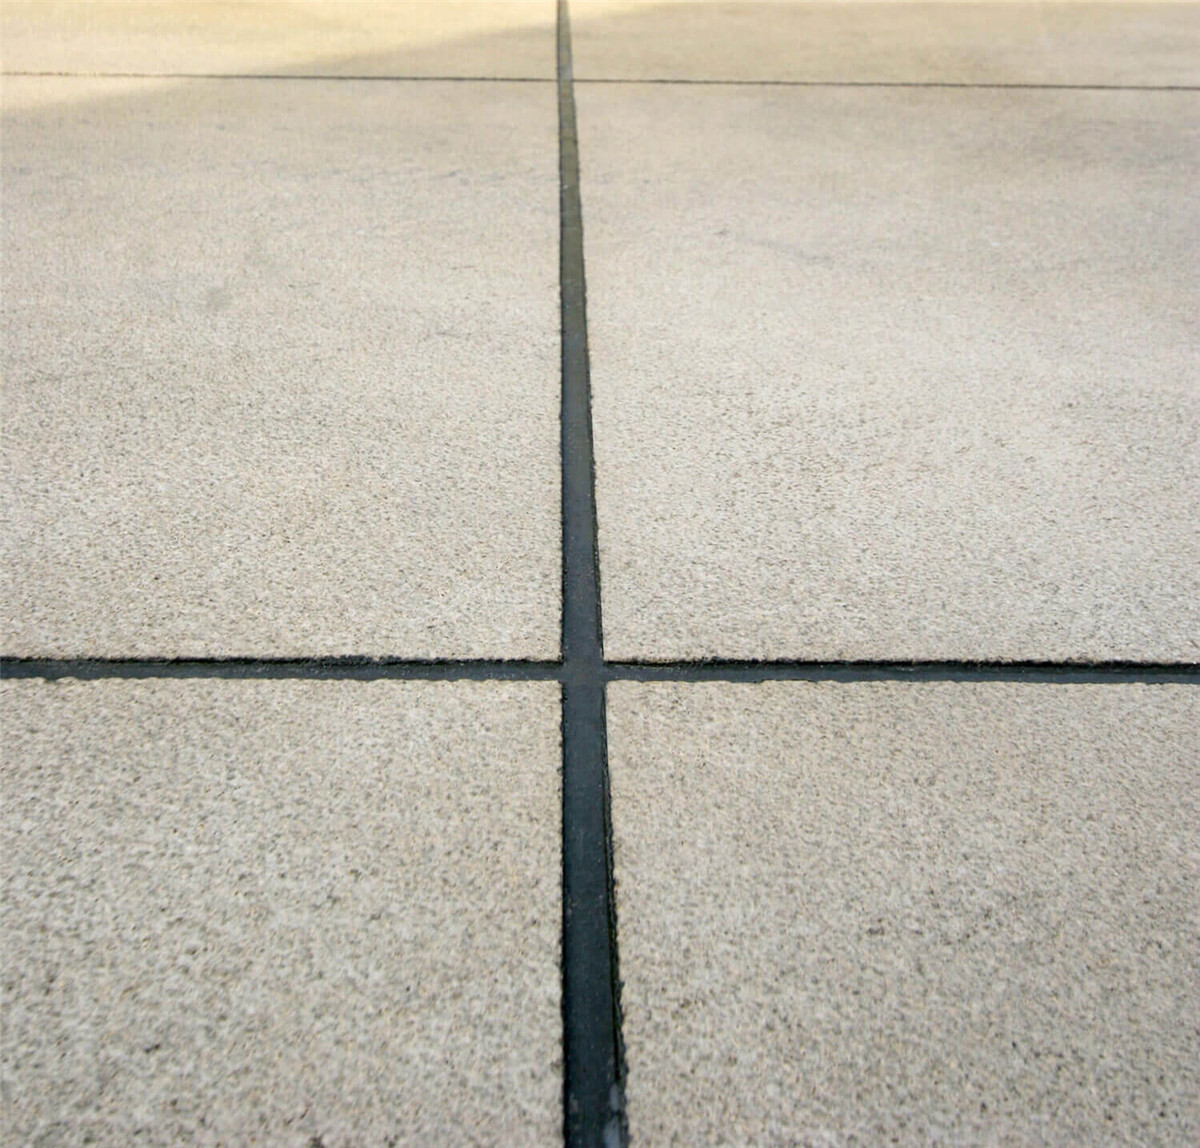 How To Deal With Ground Expansion Joints In Epoxy Flooring Construction